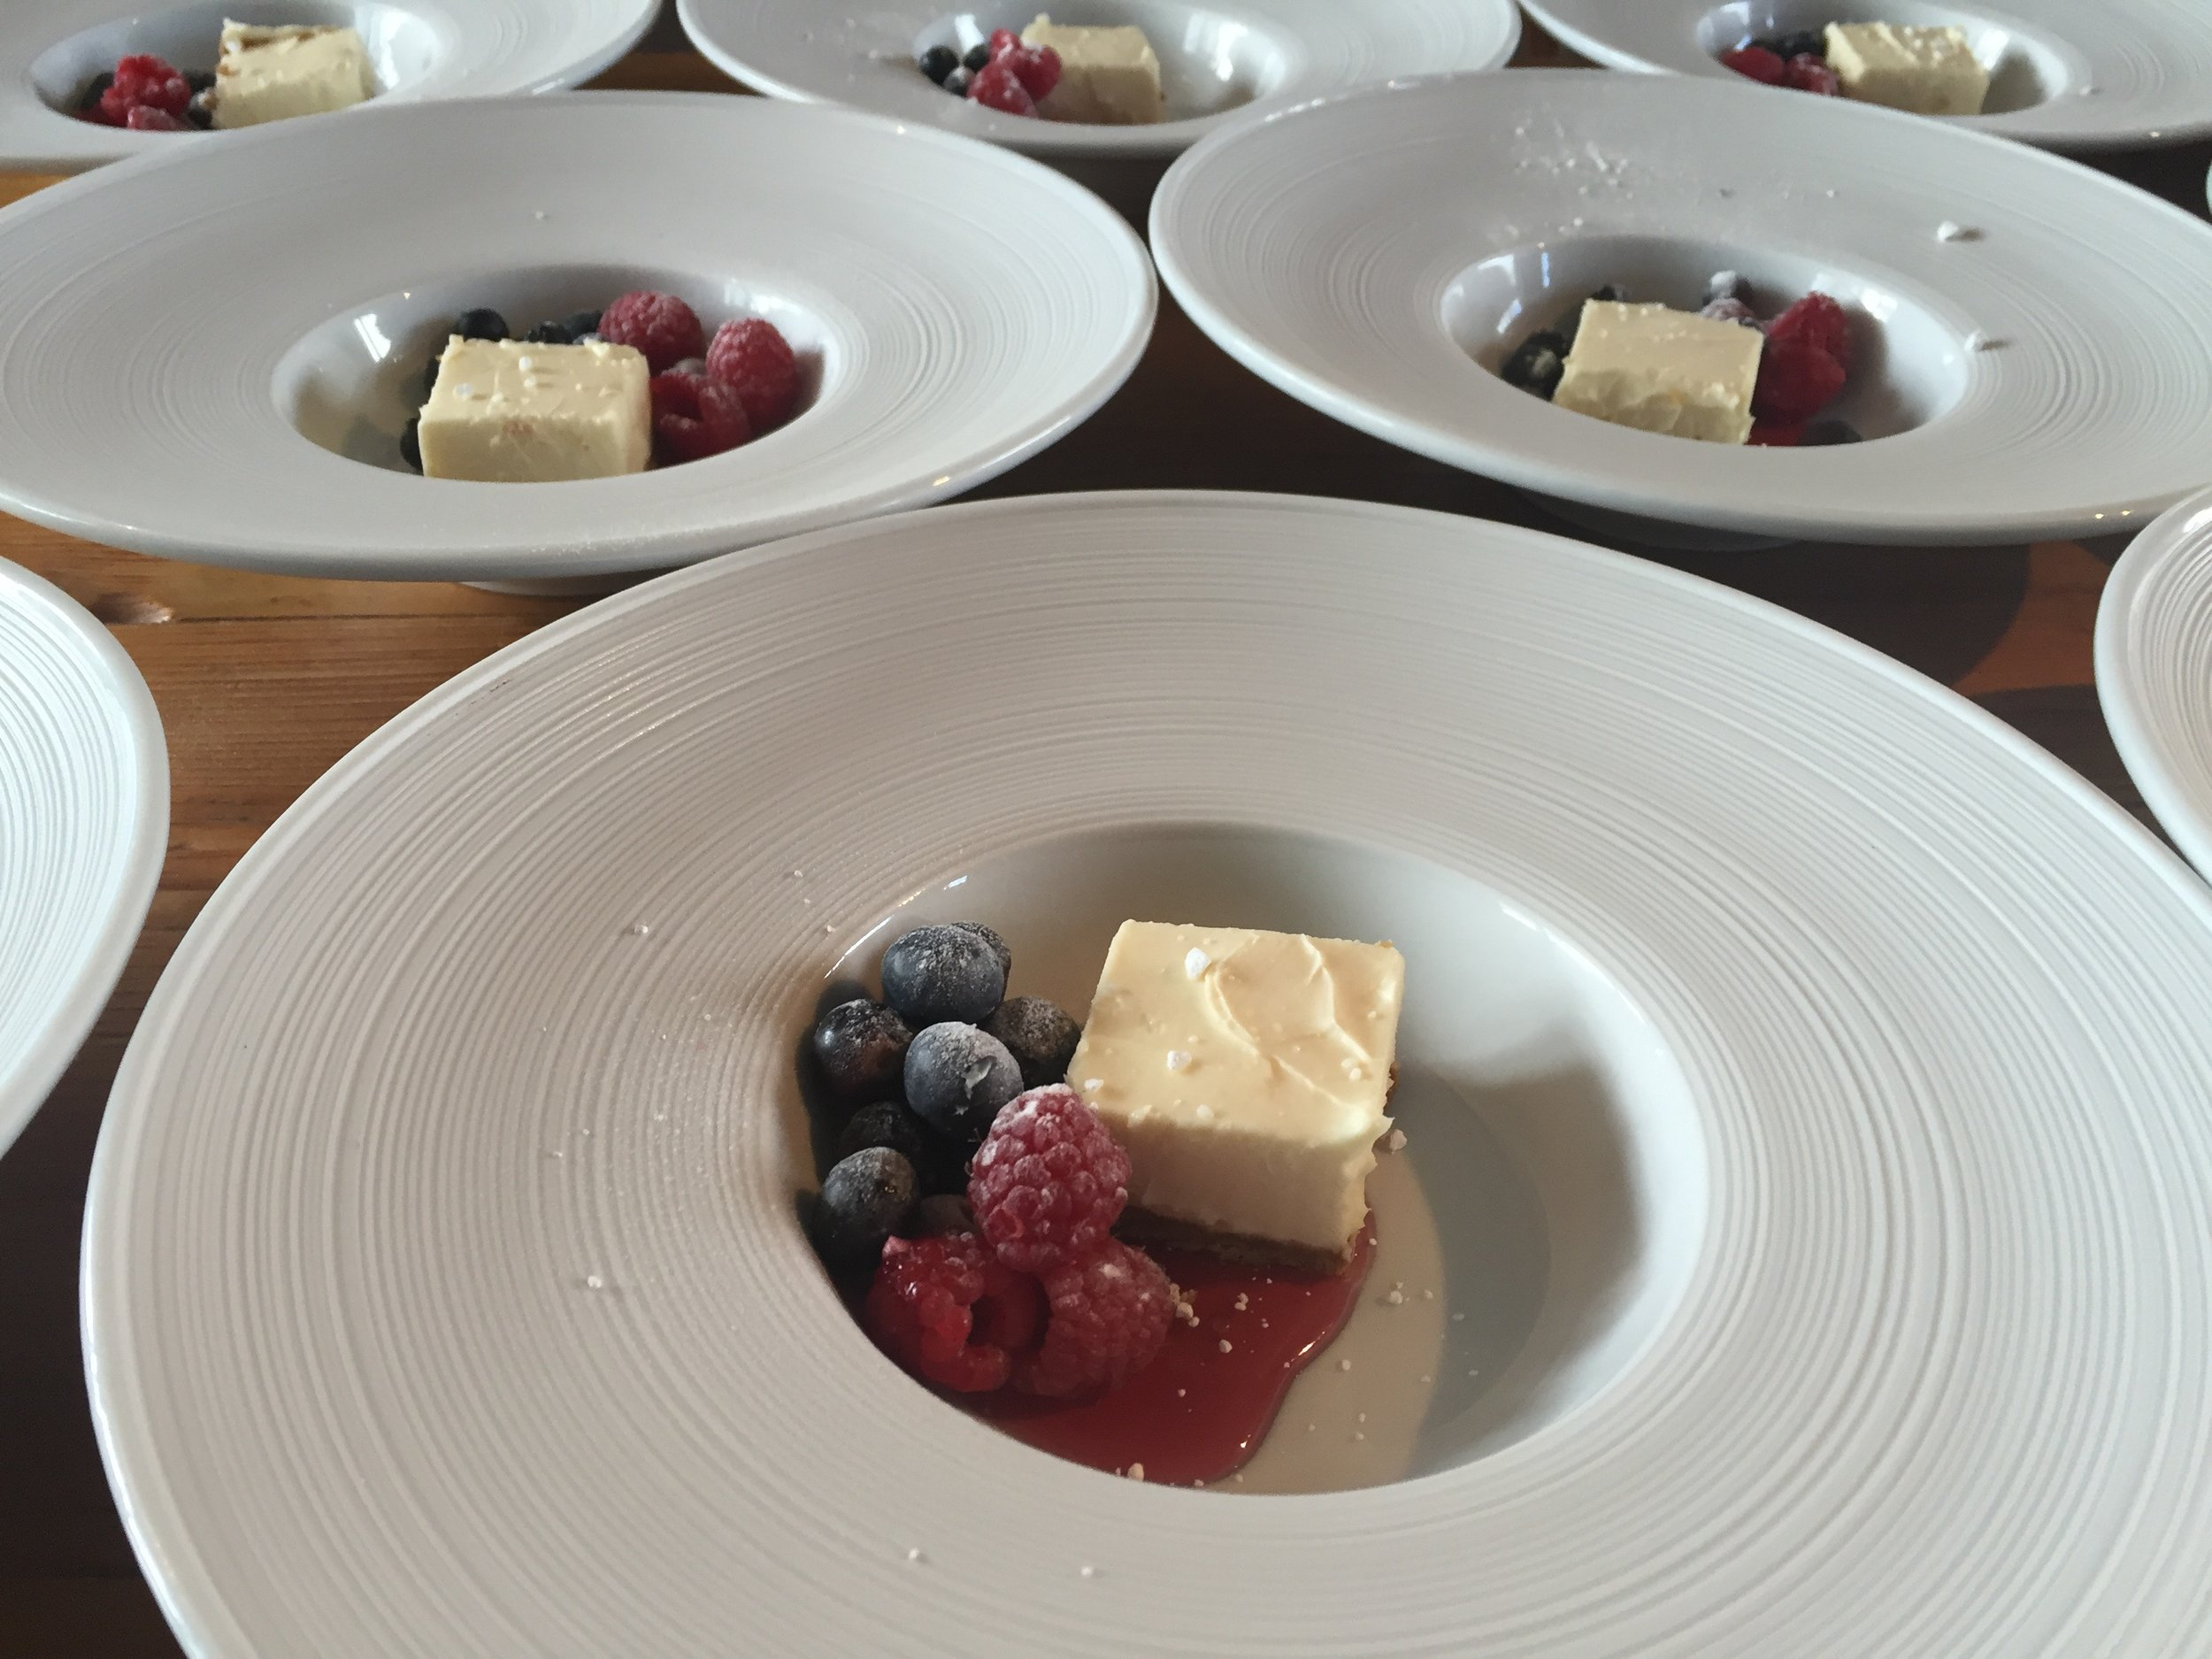 Lemon and Ginger cheesecake with berries and coulis